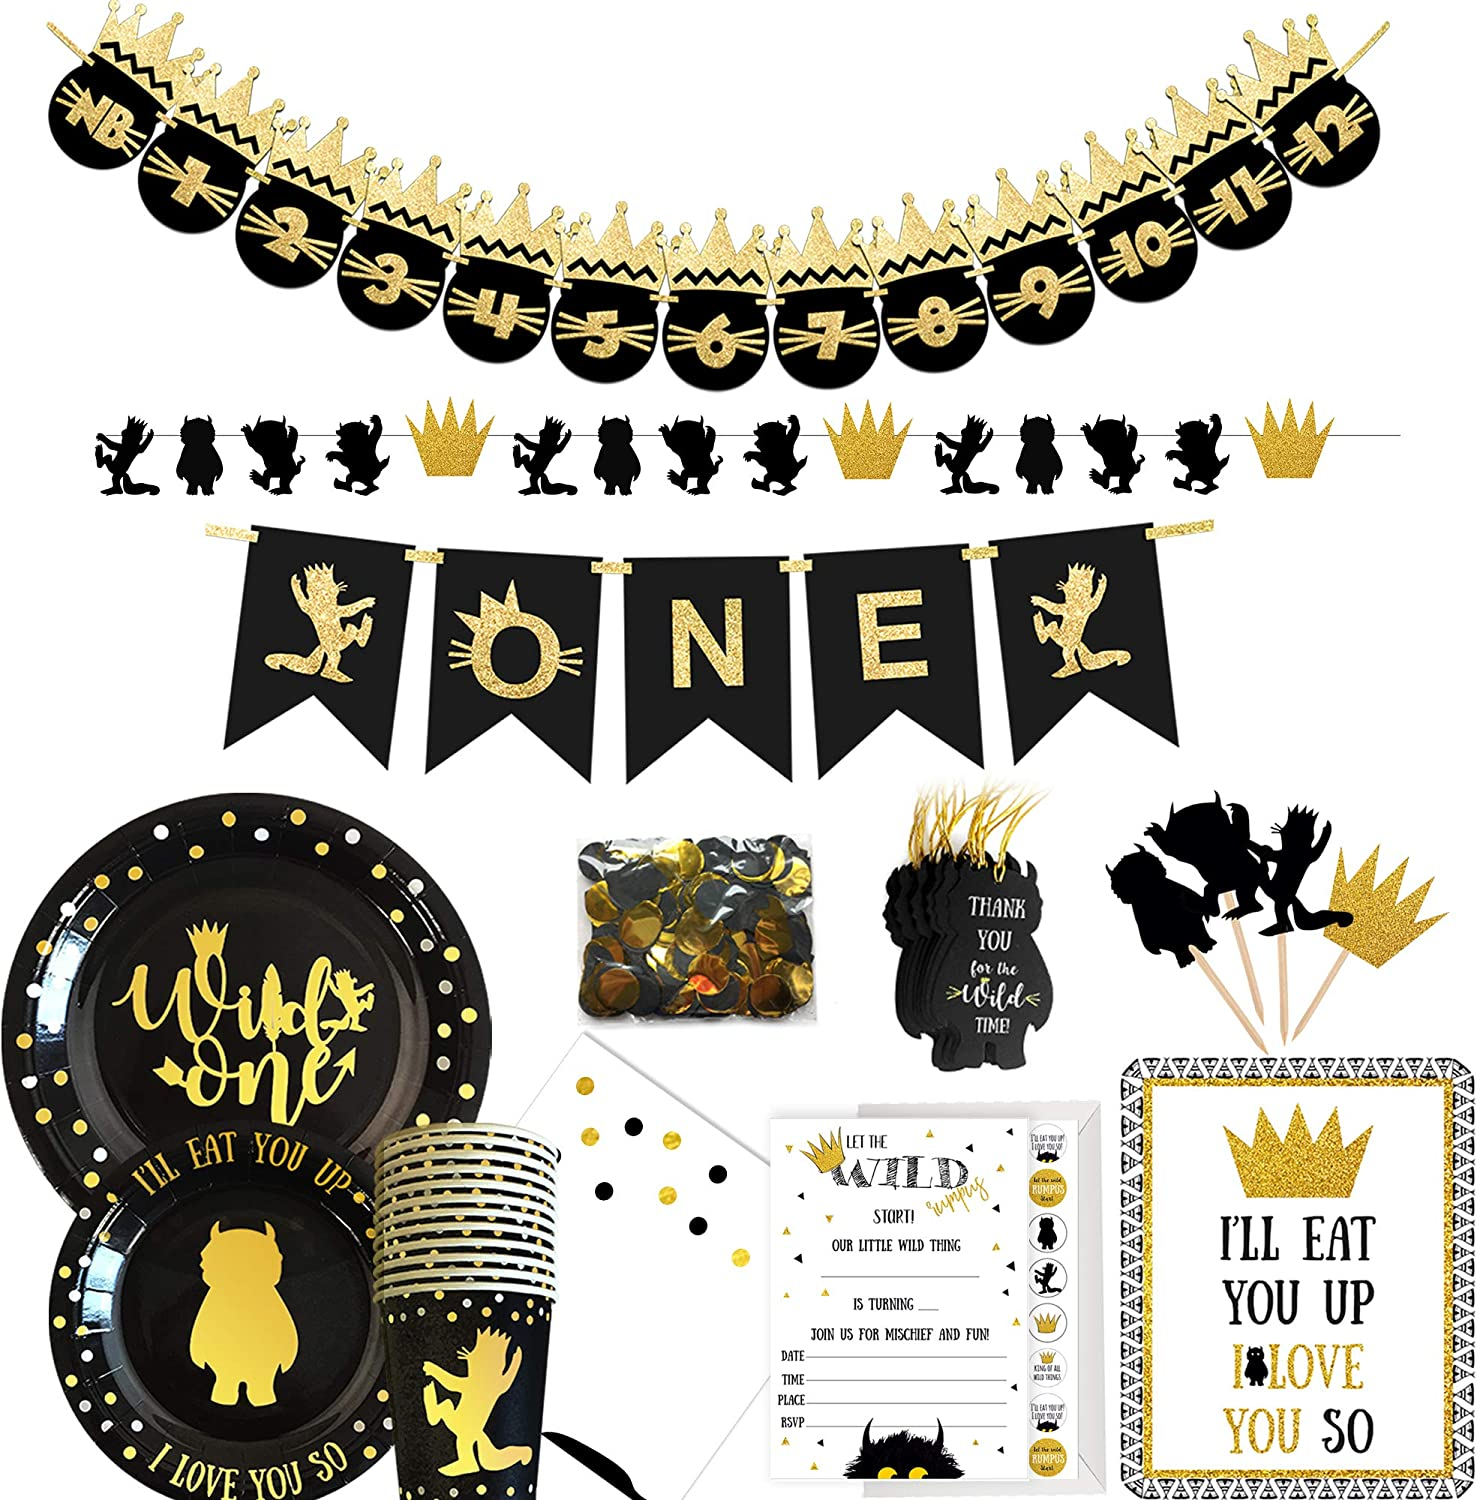 Wild One Birthday Decorations I 12 items -129+ Pieces Wildone Party Supplies I Party Plates Napkins Disposable Cups I Garlands High Chair & Monthly Photo Banner I Cake Toppers Confetti Tags Invitation